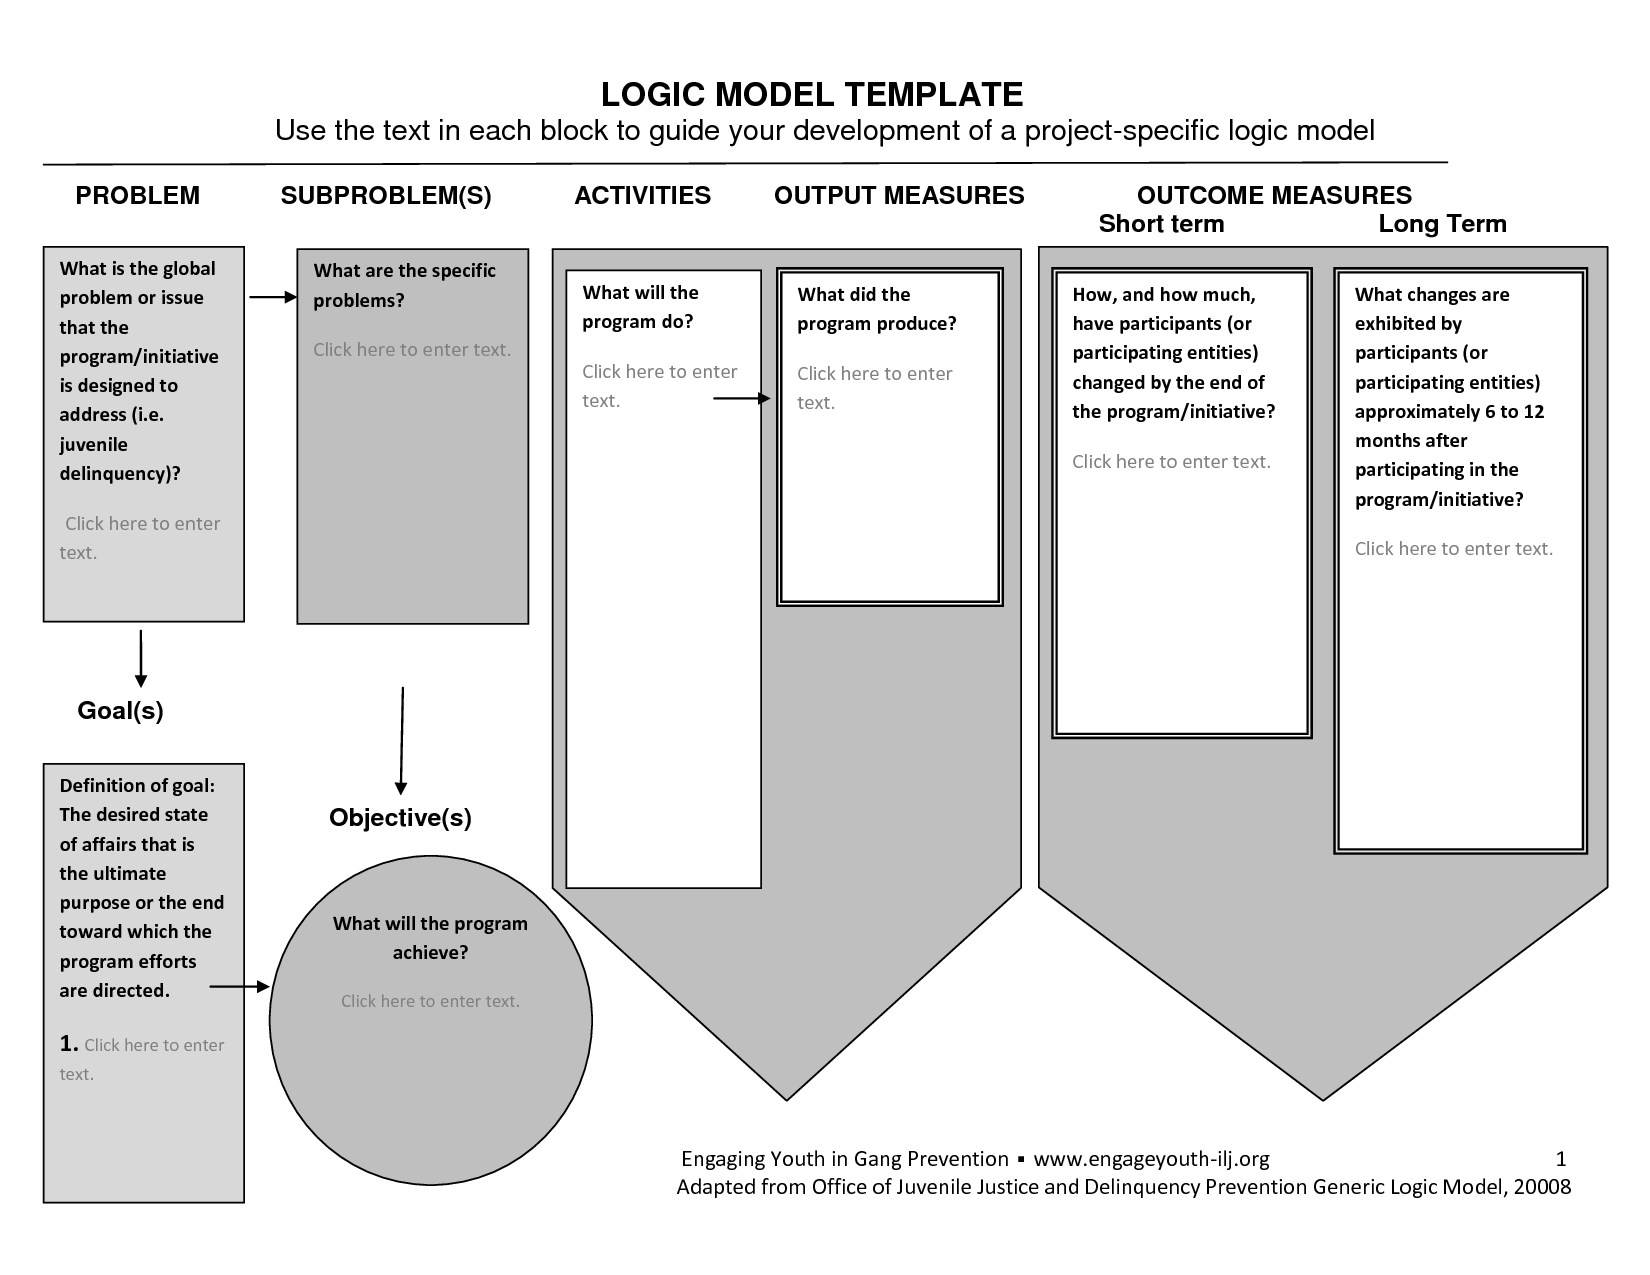 logic model template qvyiTXTU | Educating for change | Pinterest ...